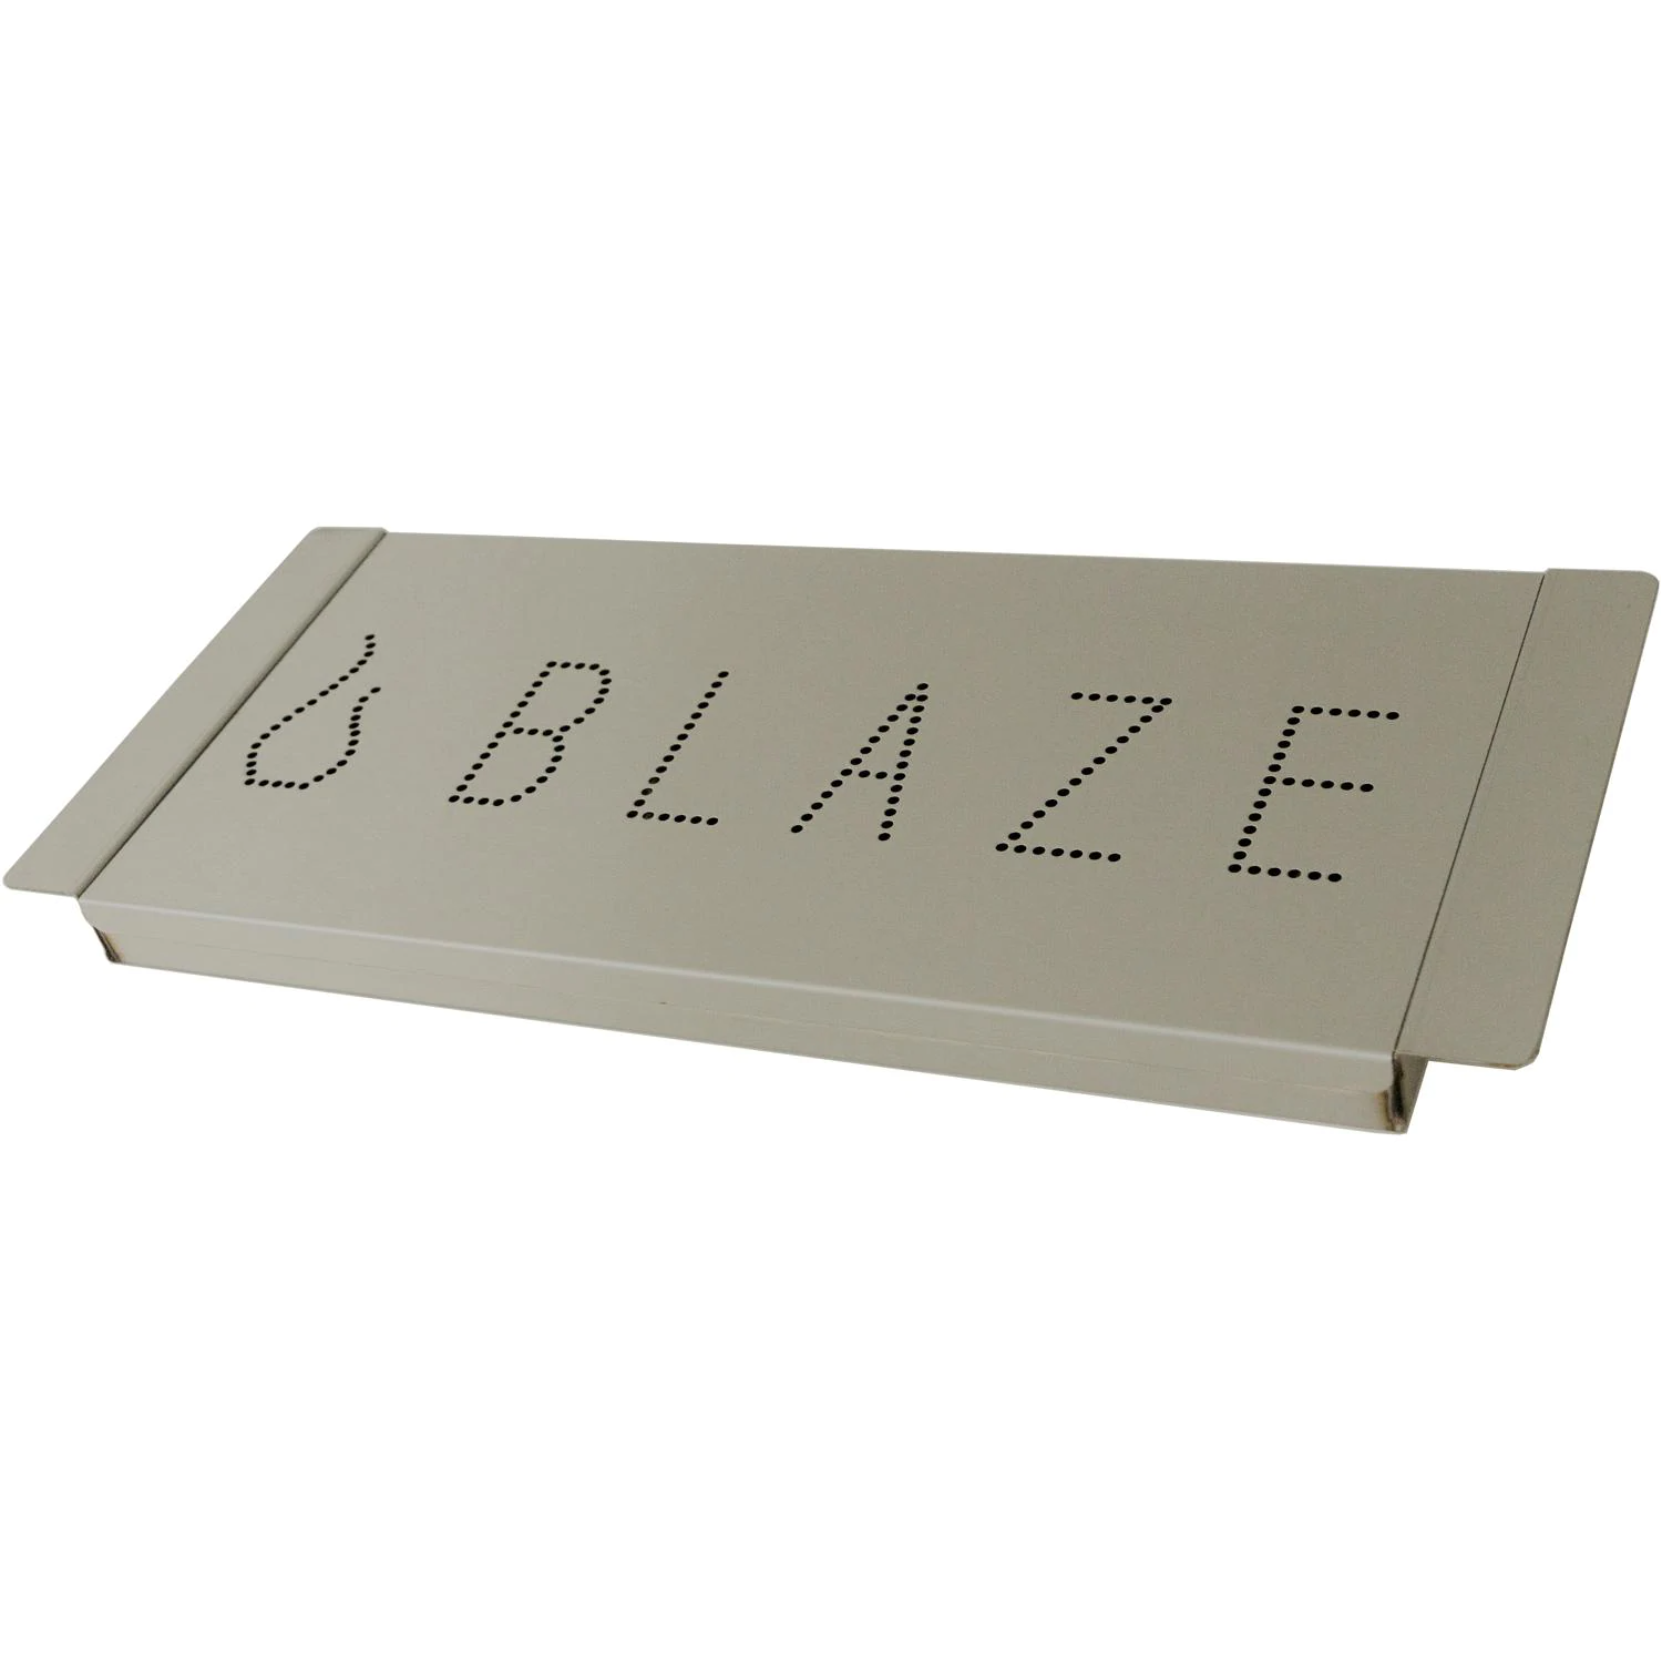 Blaze Extra Large Stainless Steel Smoker Box